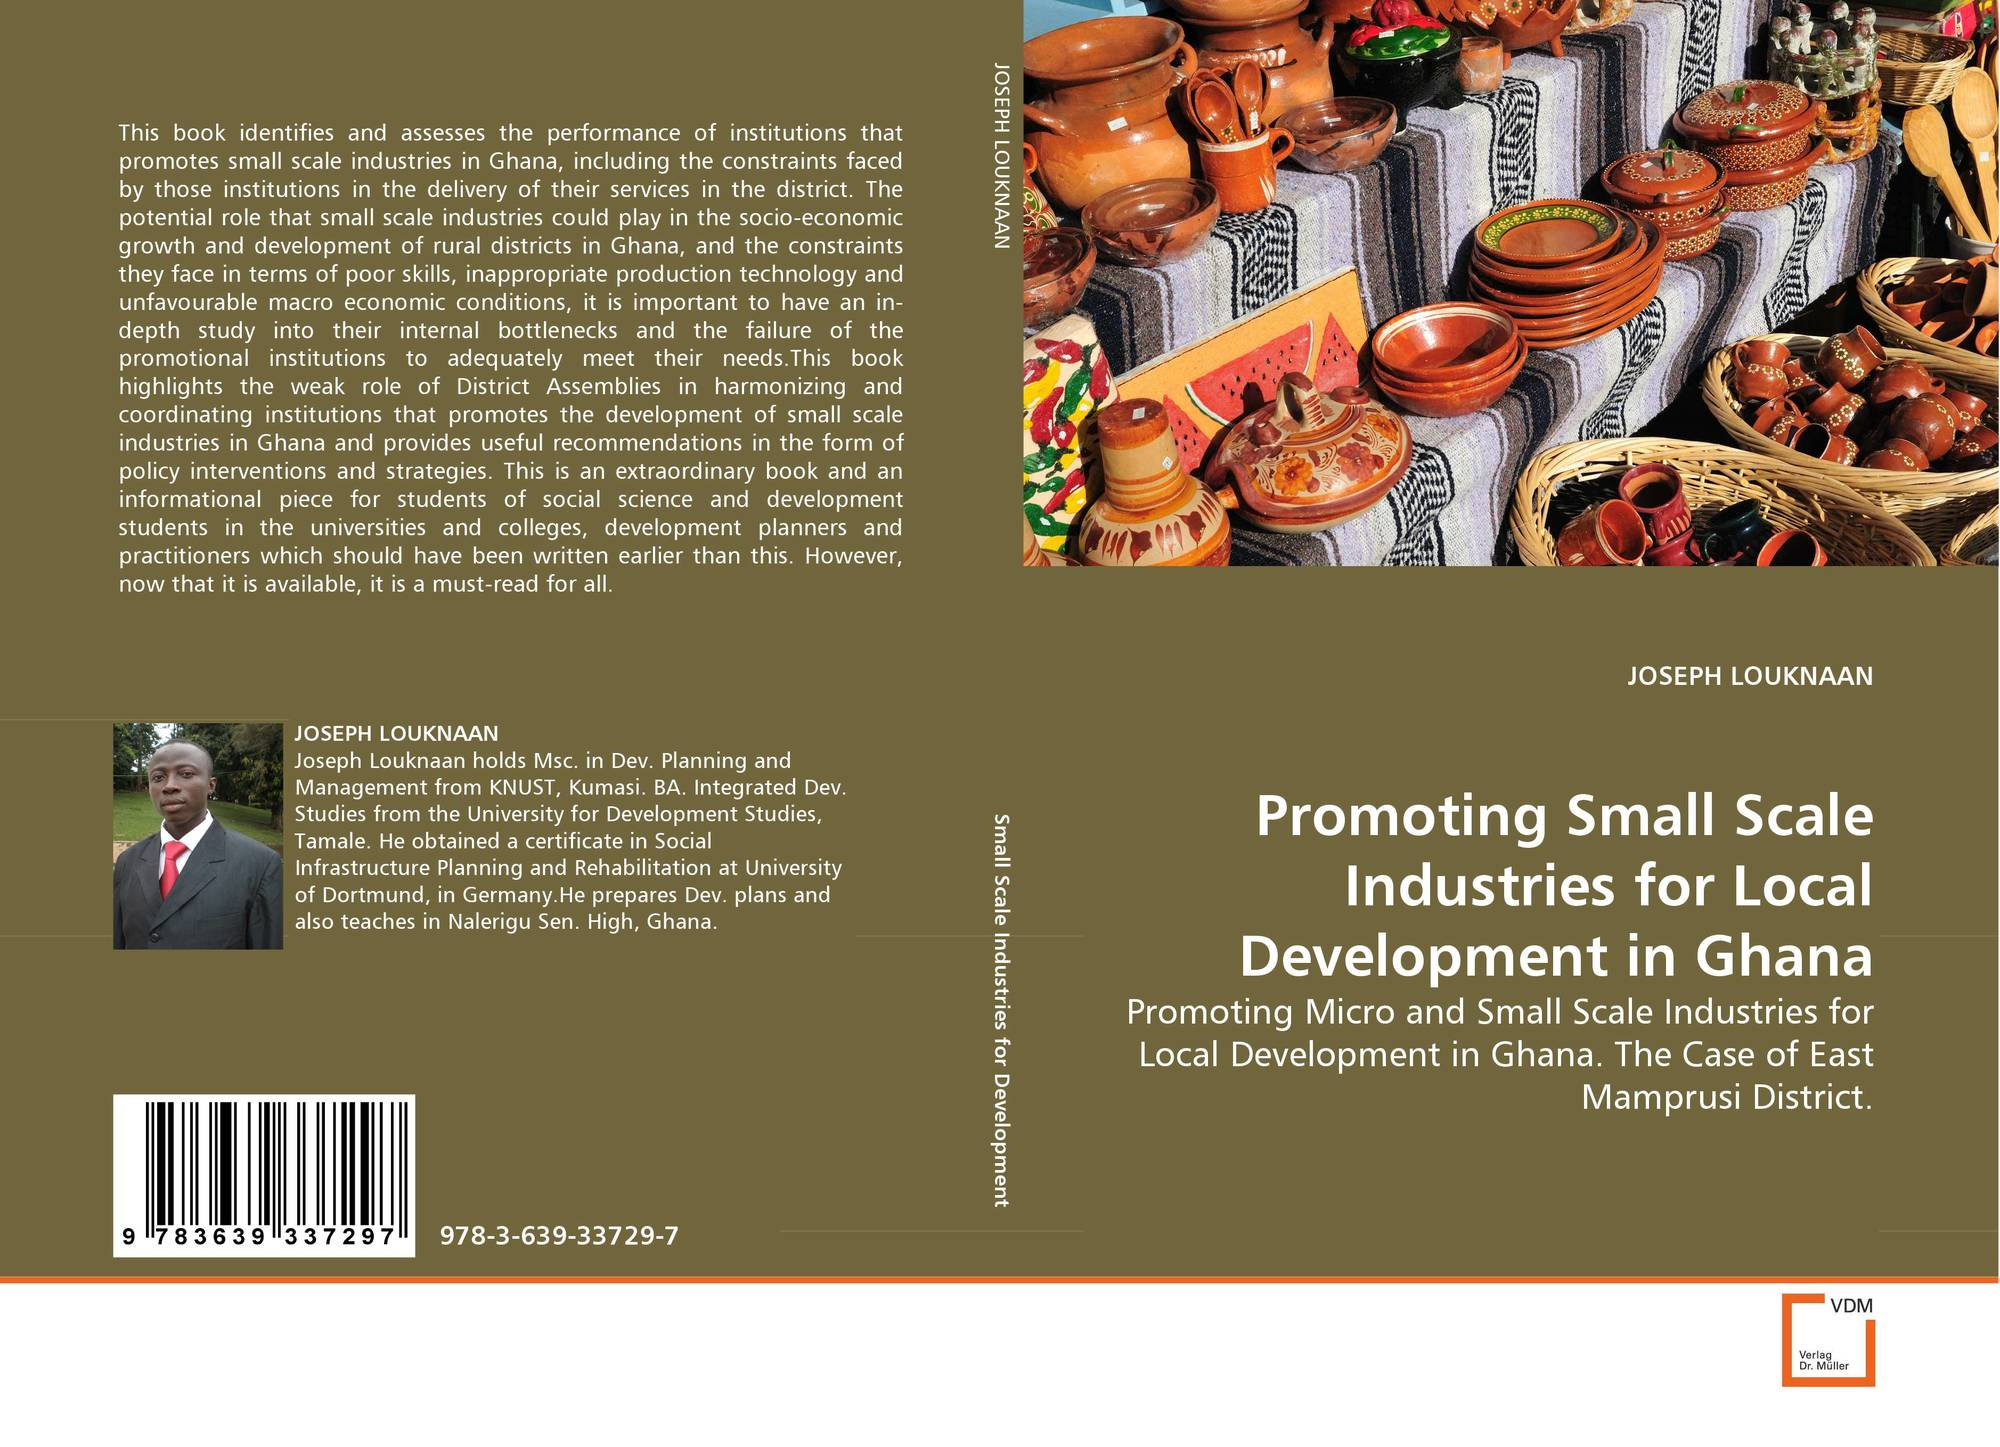 growth of small scale industries Small scale industries - download as word doc (doc / docx), pdf file (pdf), text file (txt) or read online small scale industries economics project.